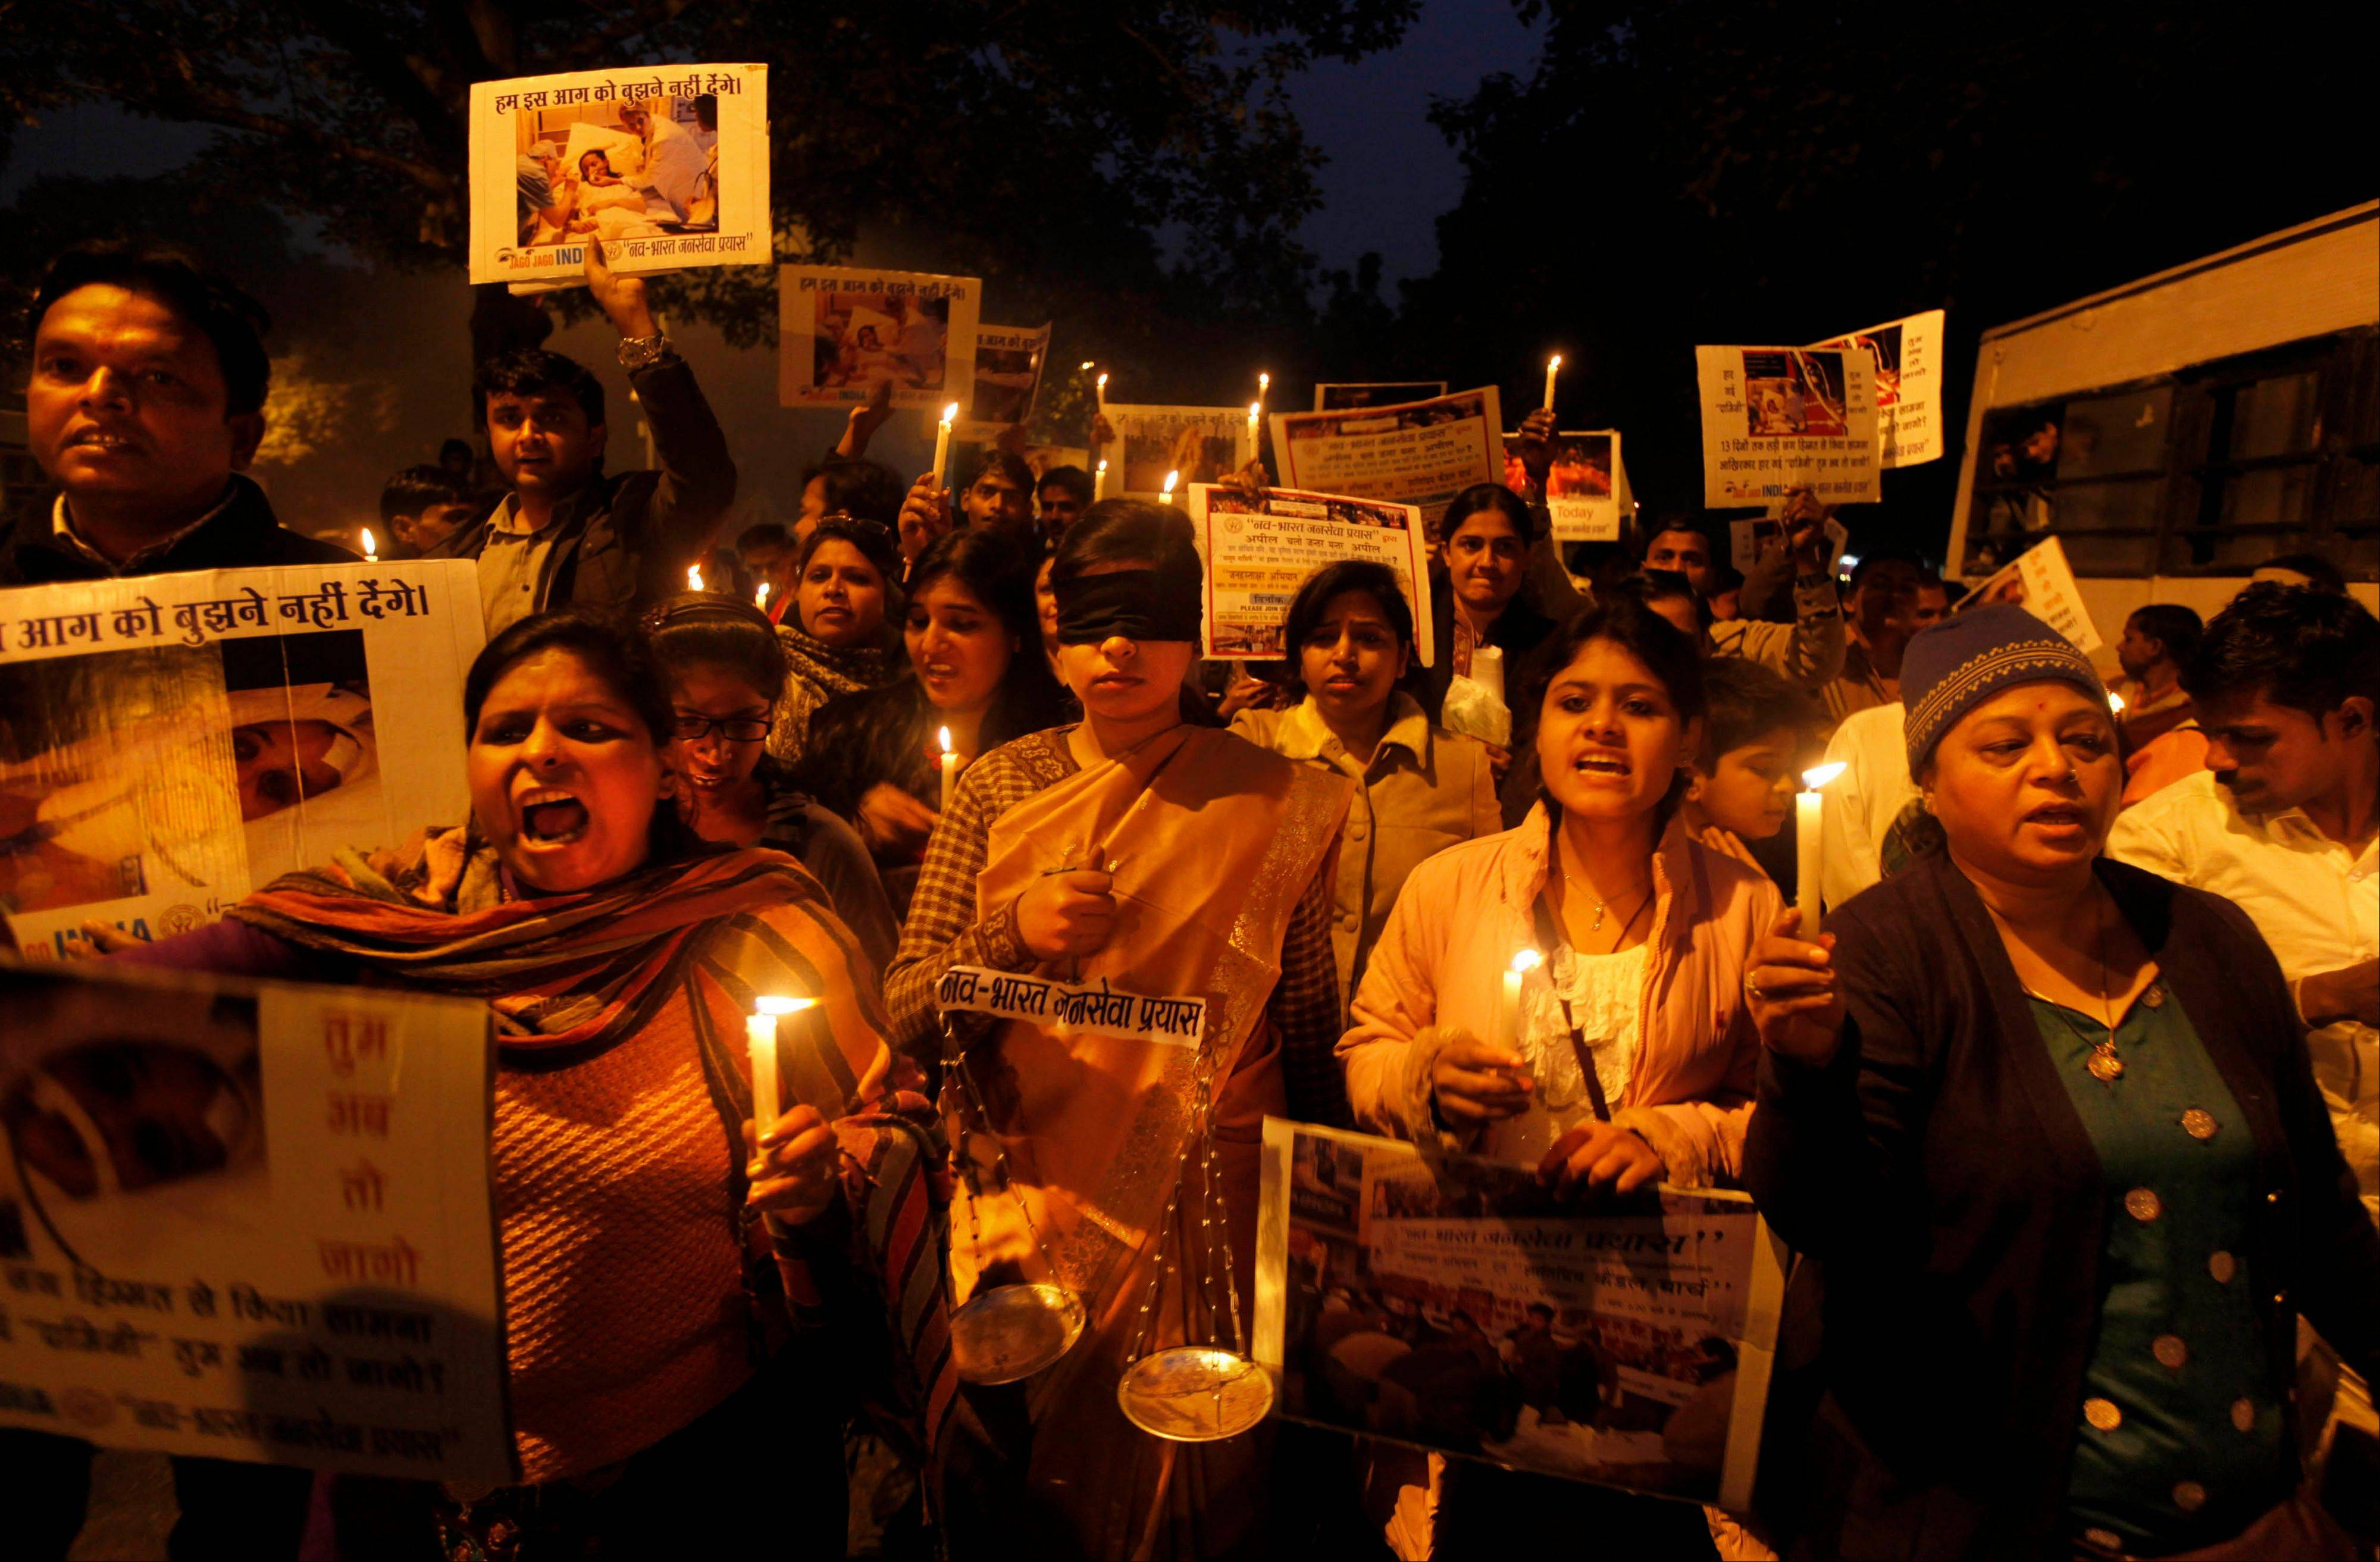 Indians take part in a candlelight vigil in New Delhi, India. Police said Sunday they have arrested six suspects in another gang rape of a bus passenger in India, four weeks after a brutal attack on a student on a moving bus in the capital outraged Indians and led to calls for tougher rape laws.